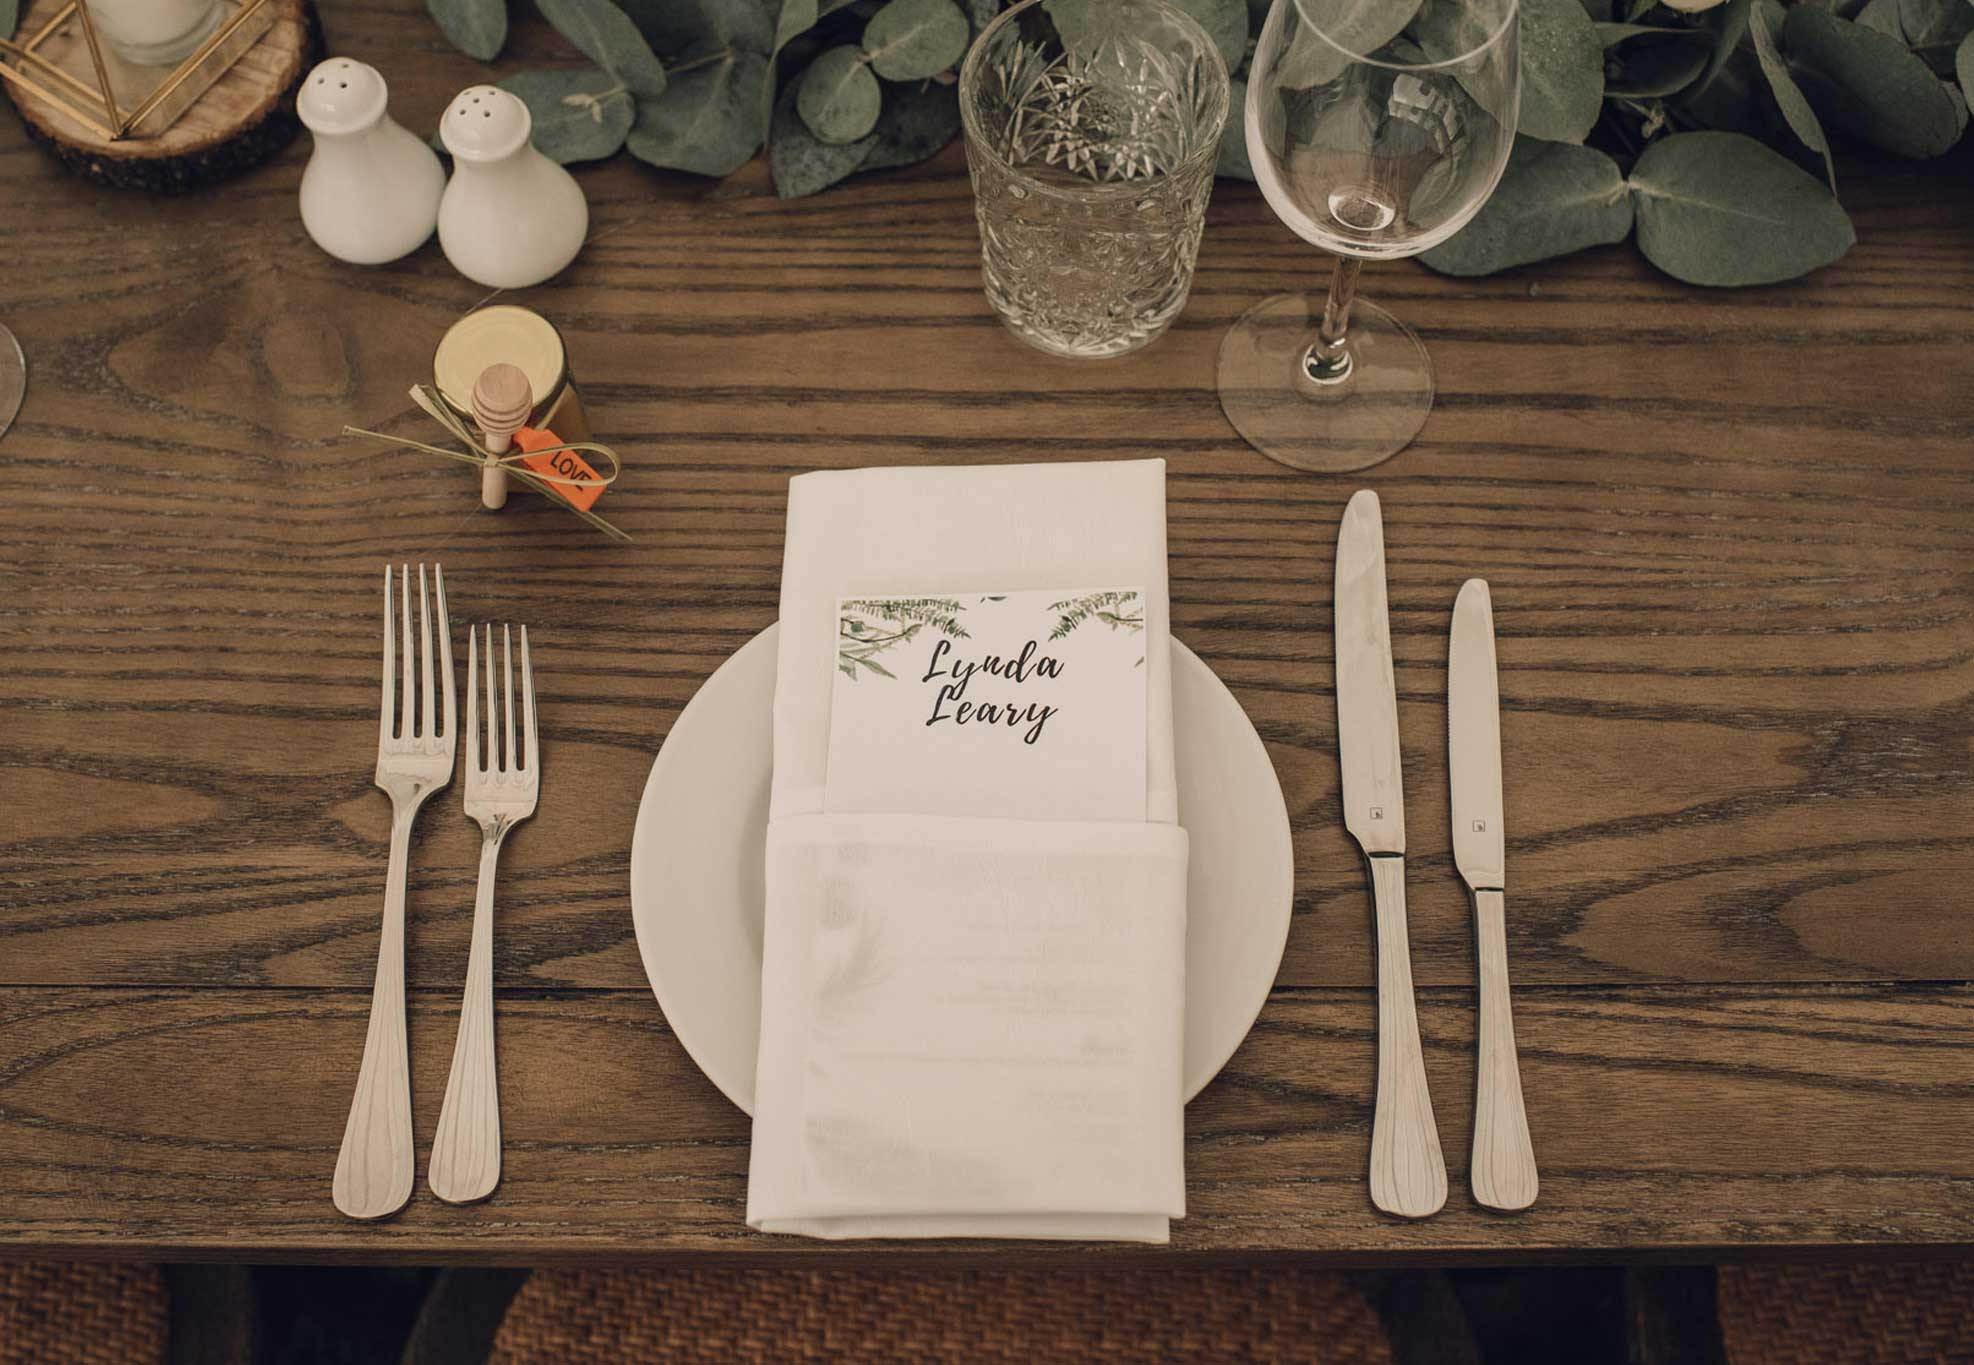 silk-estate-marquee-weddings-and-events-styling-and-hire-silver-cutlery-3